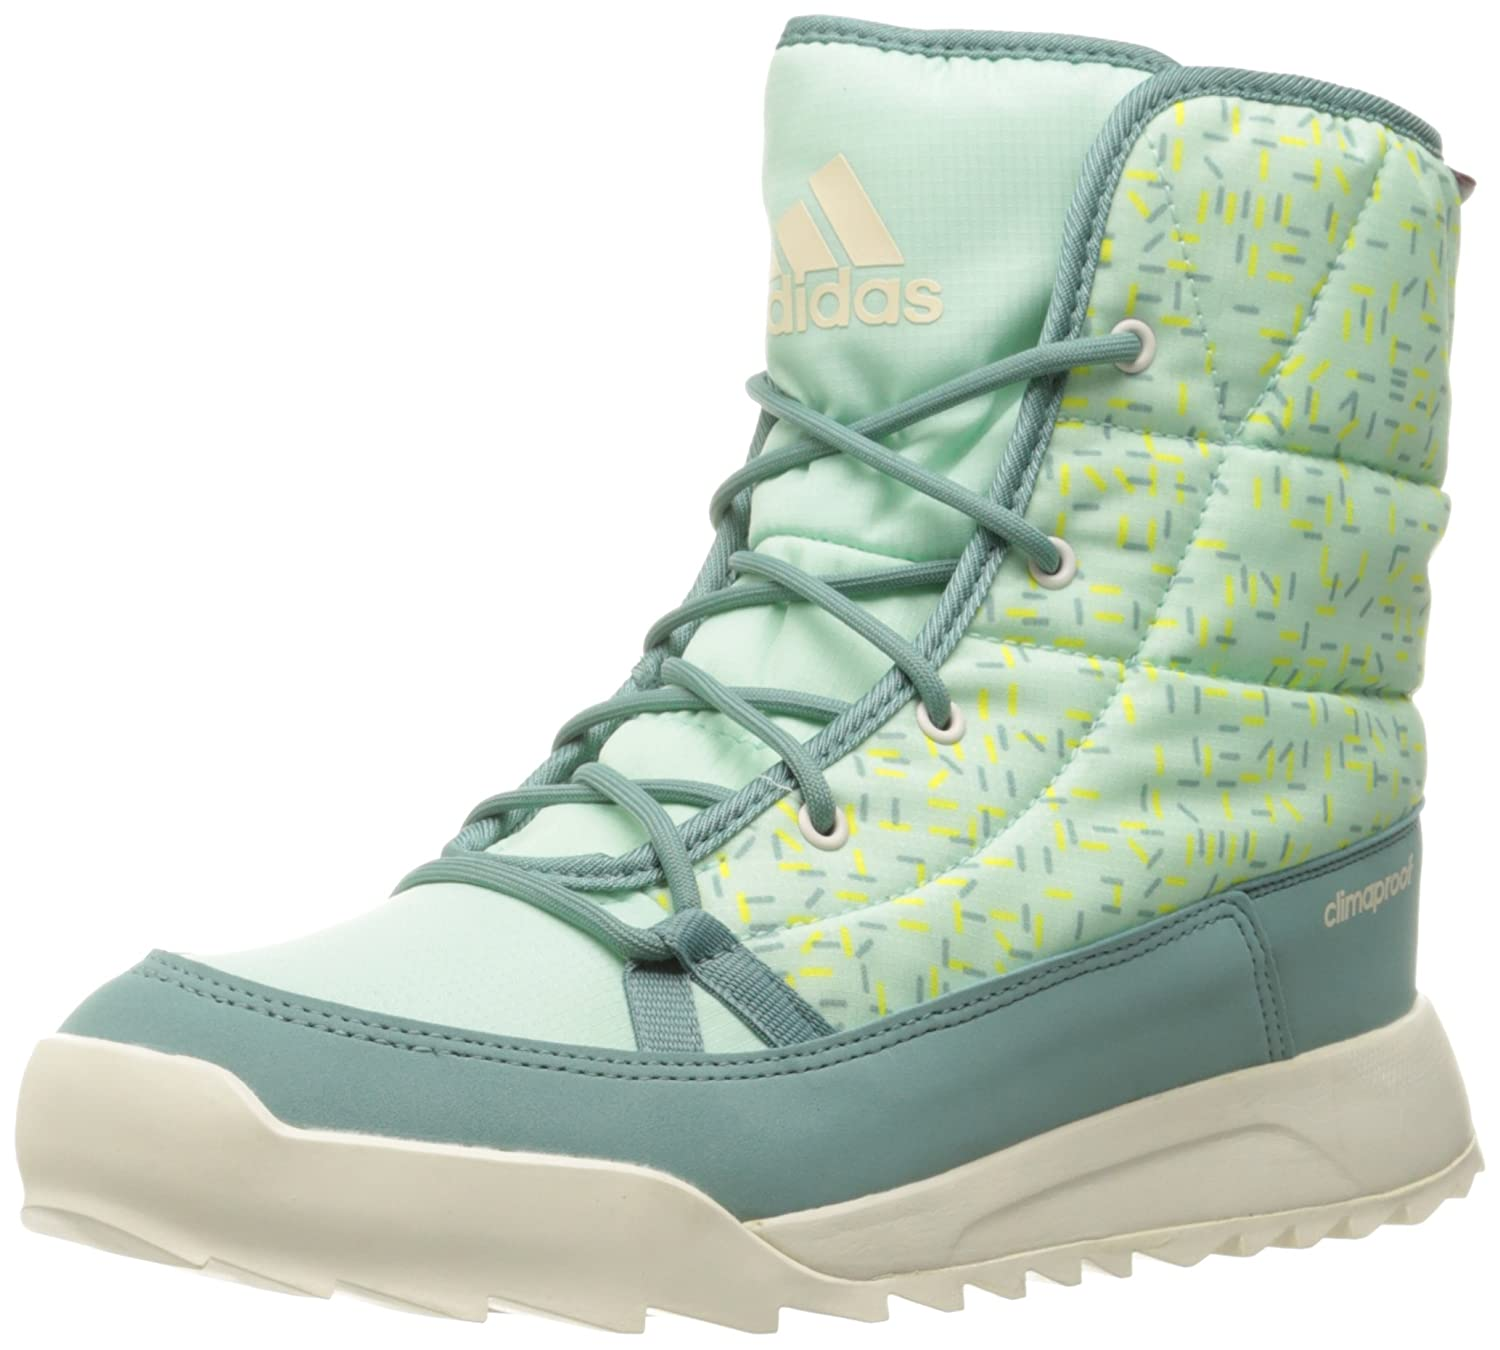 adidas outdoor Women's CW Choleah Insulated CP Snow Boot B018WSYUNO 10.5 B(M) US|Ice Green/Vapour Steel/Chalk White